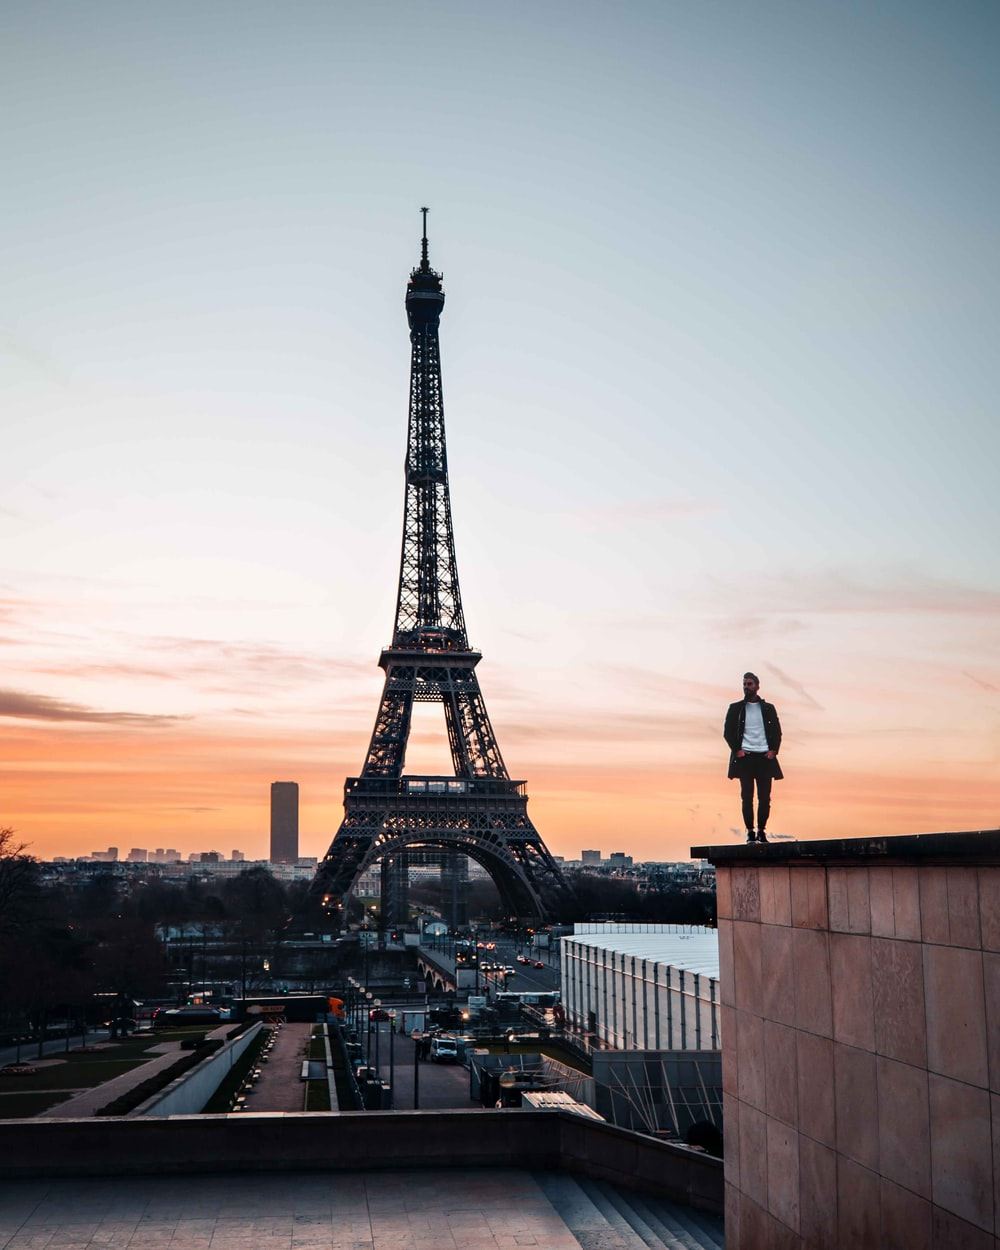 man in black jacket standing on top of building looking at eiffel tower during sunset